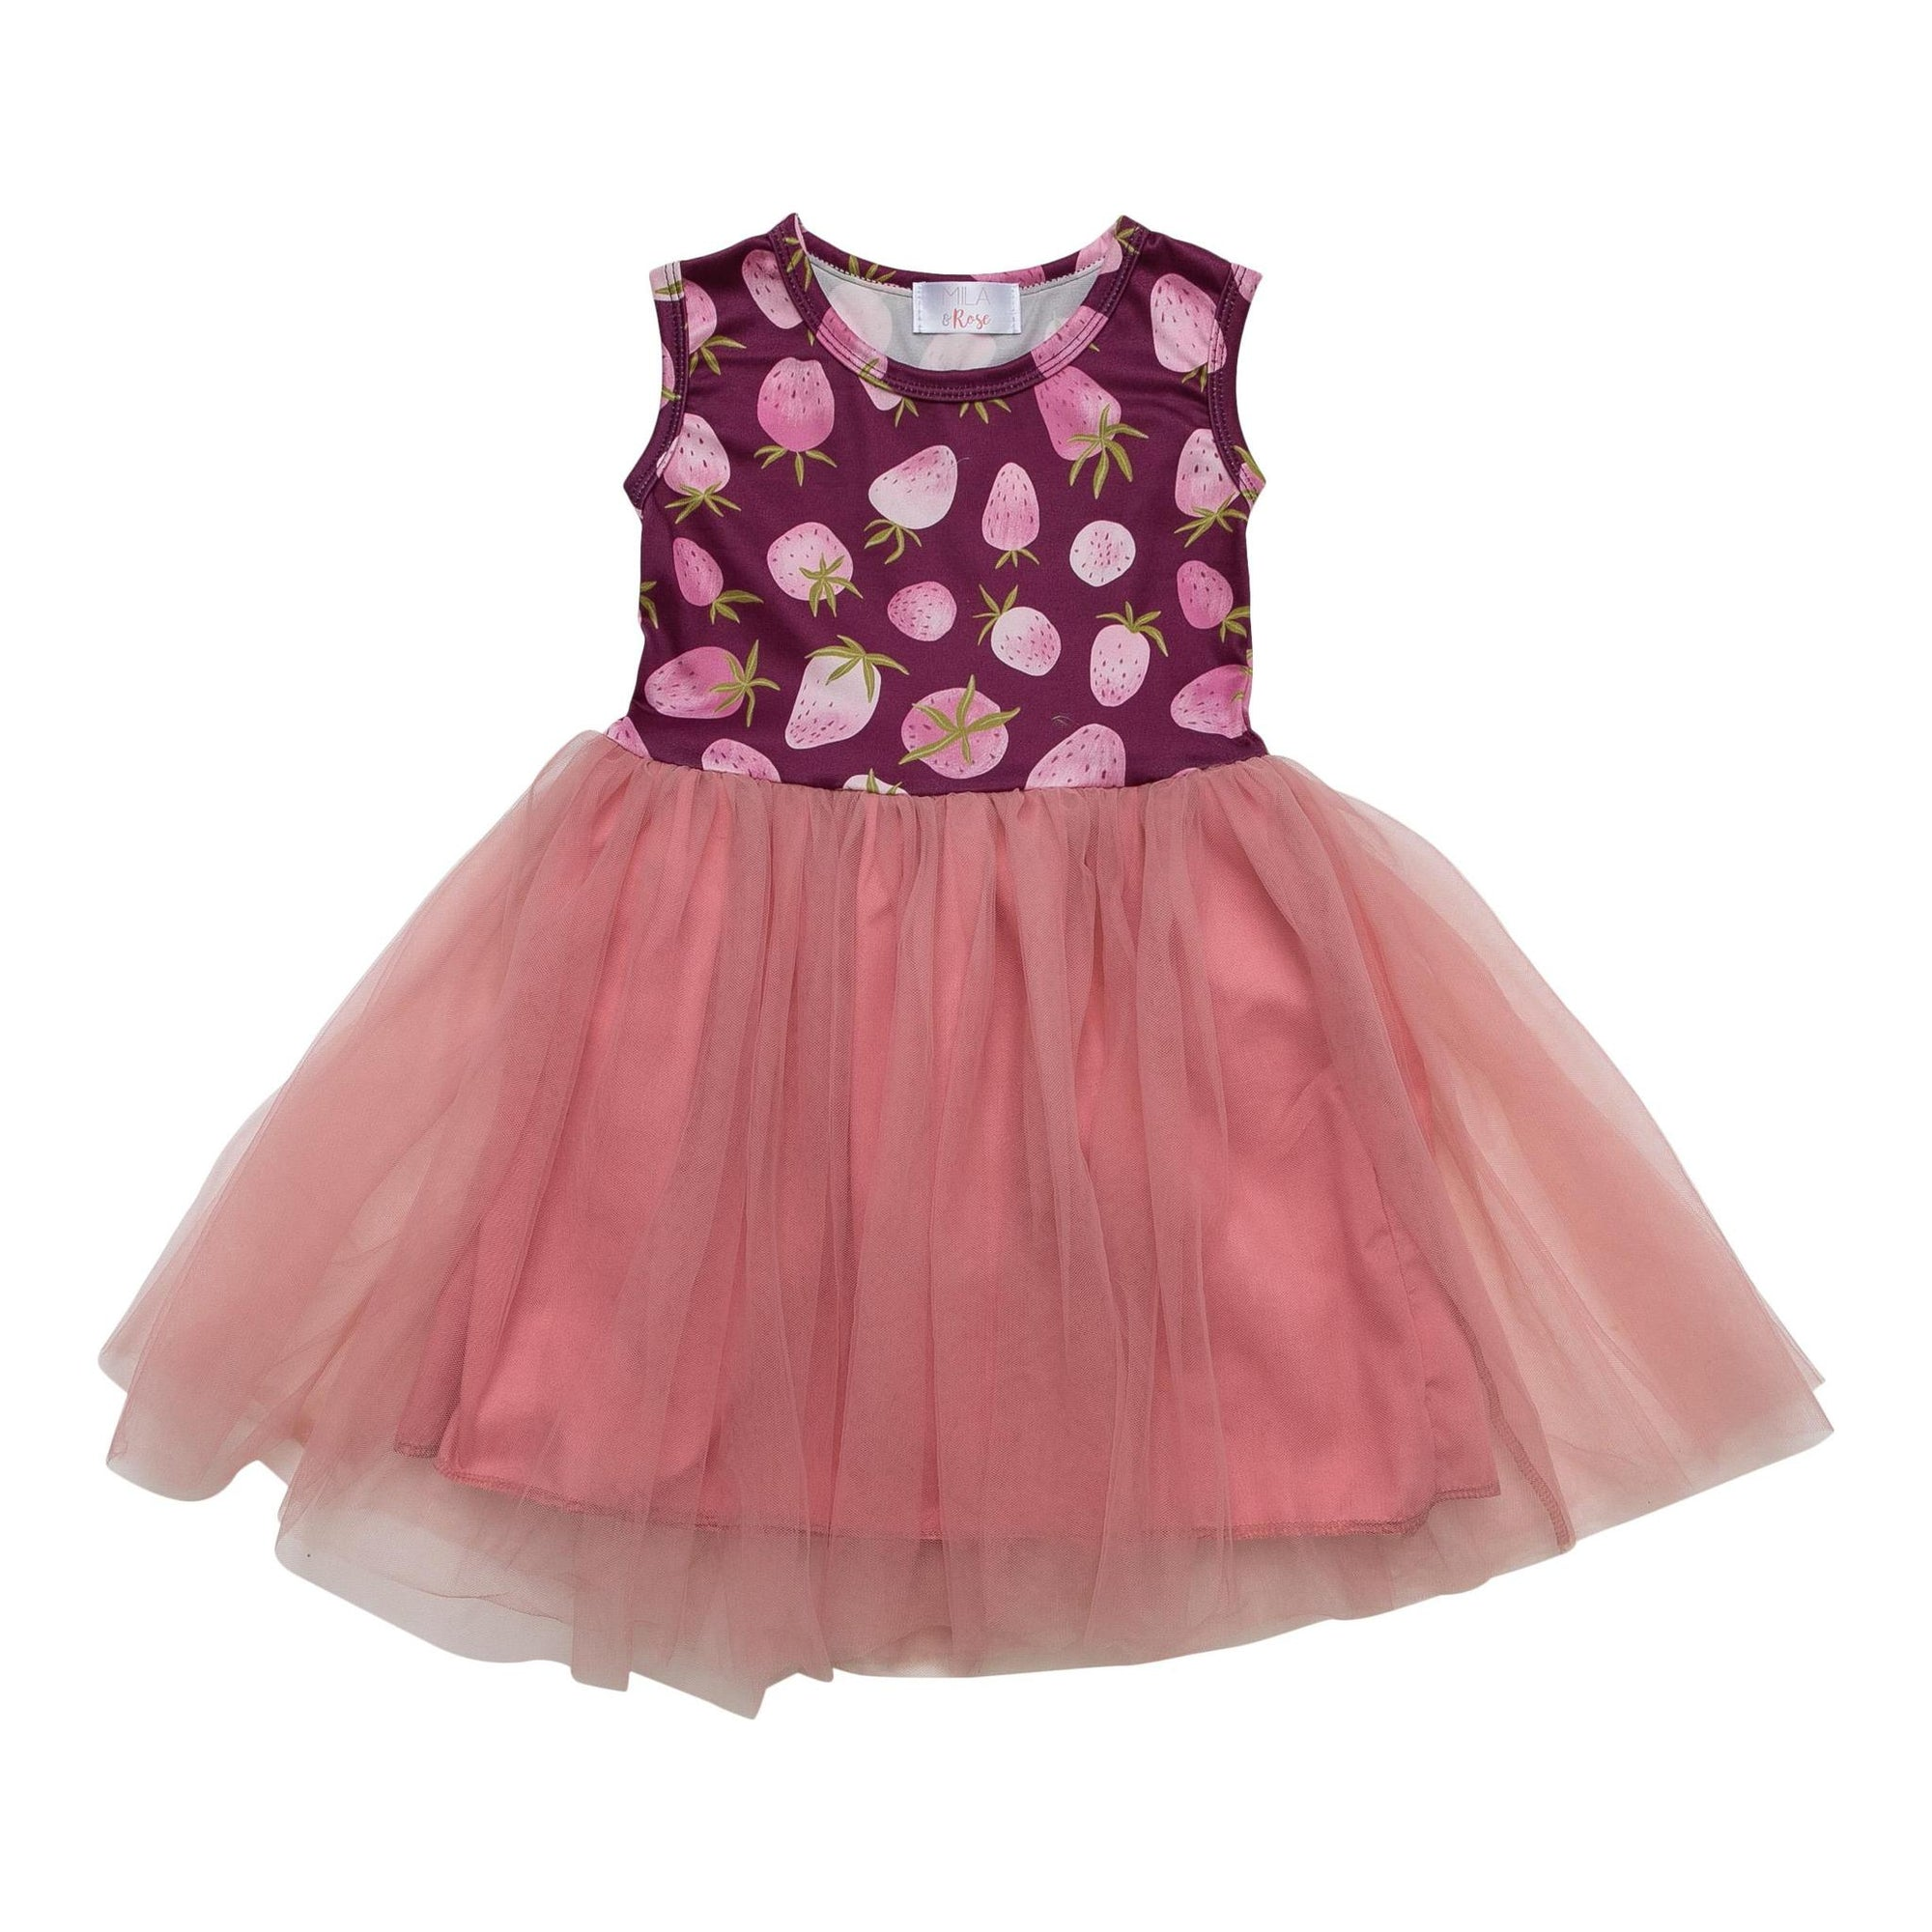 Berry Bliss Tank Tutu Dress-Mila & Rose ®